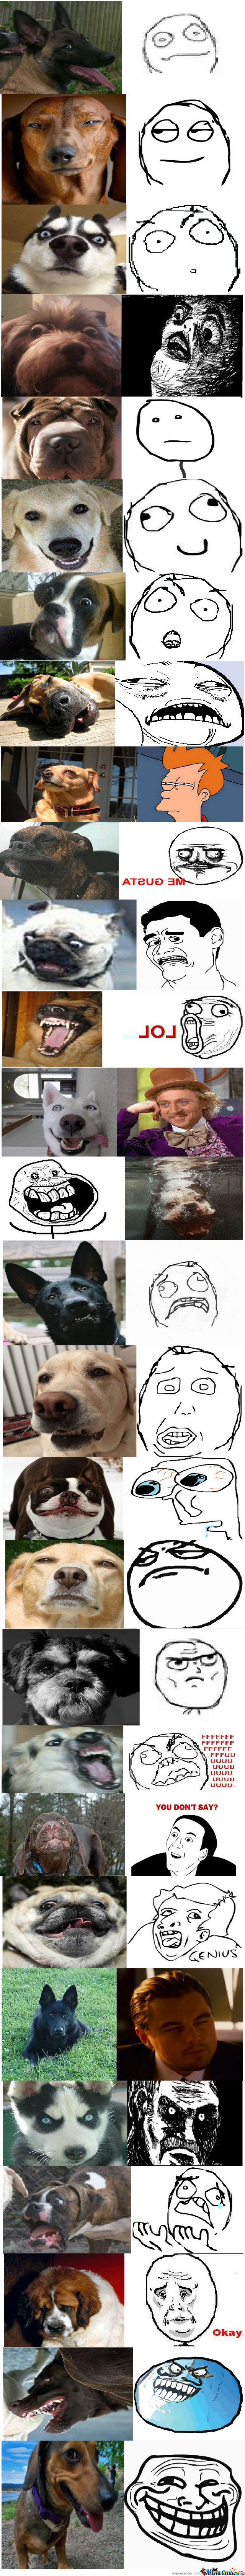 Epic Dogs